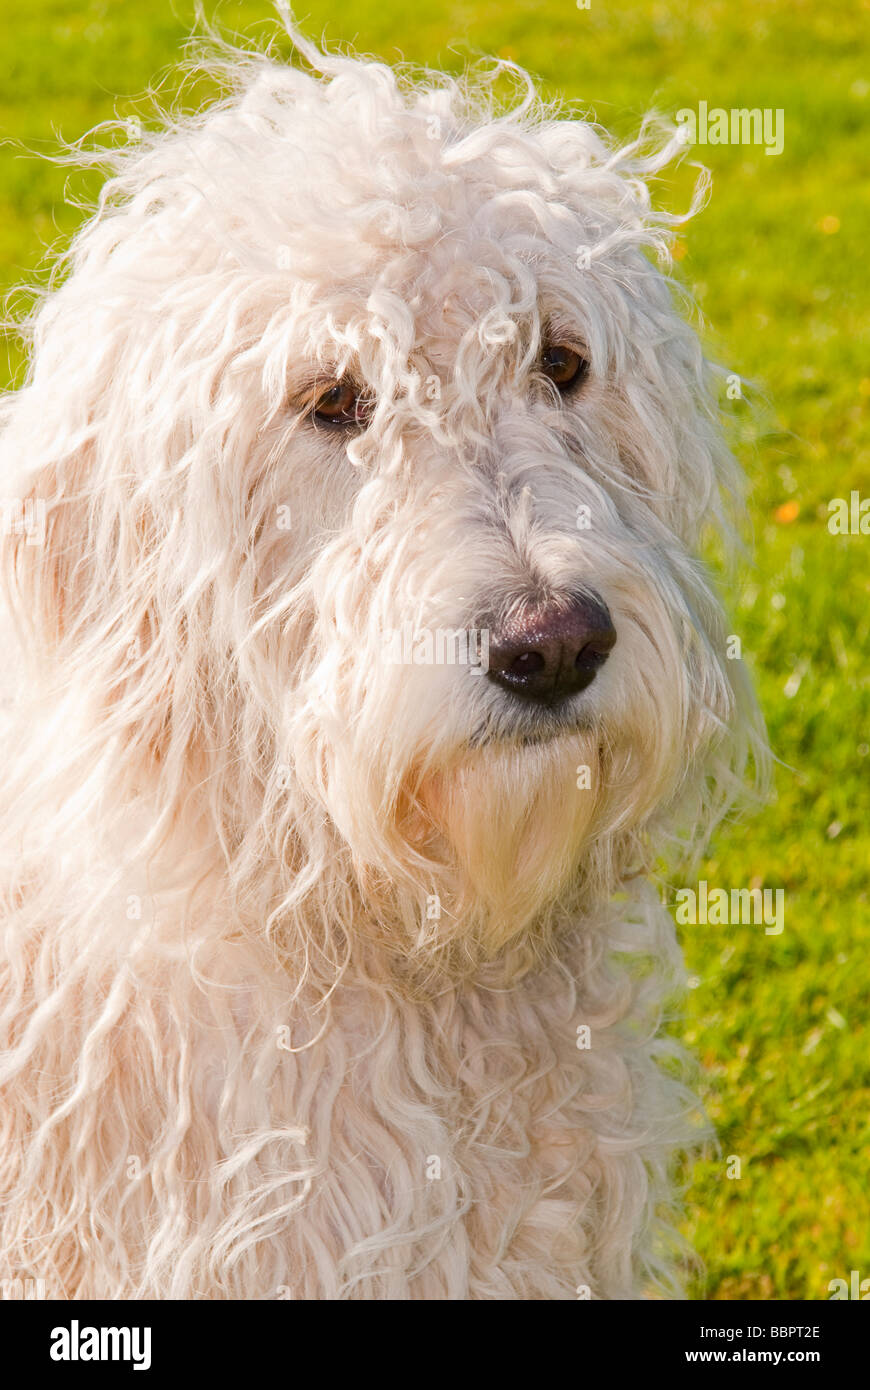 A Large White Mongrel Long Haired Cute Looking Dog Close Up